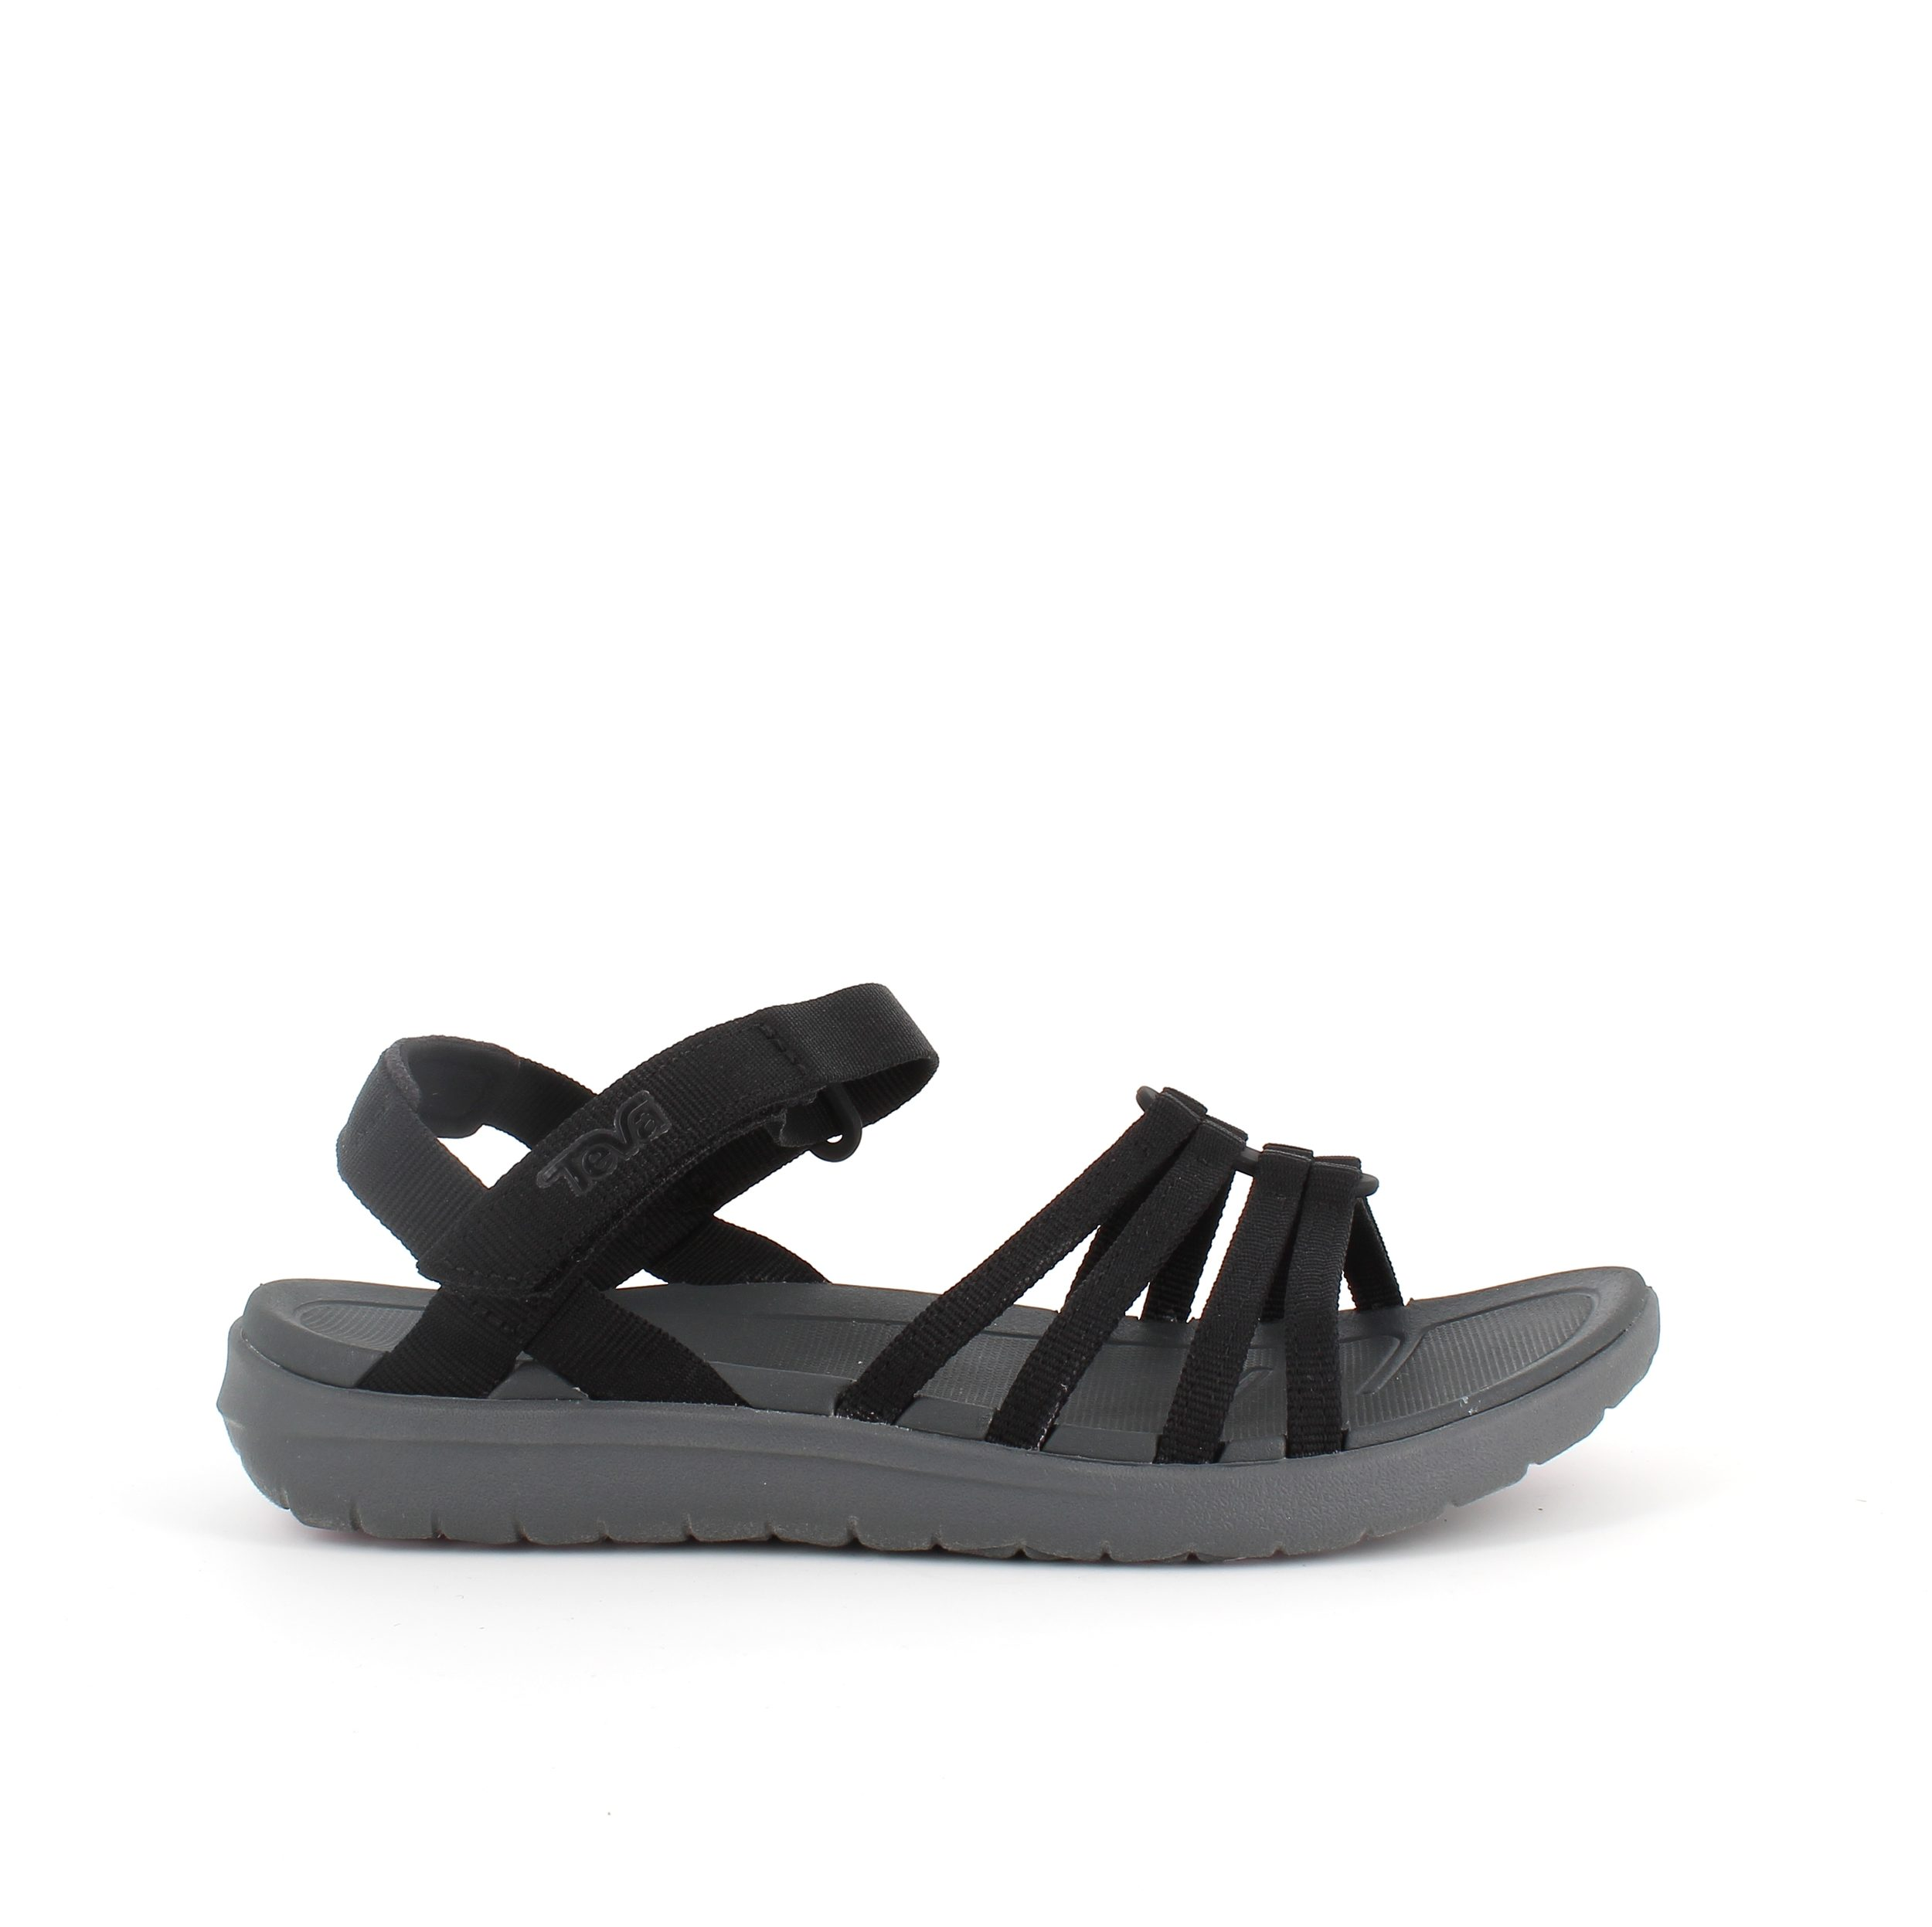 Image of   Teva Sanborn sort sandal - 41